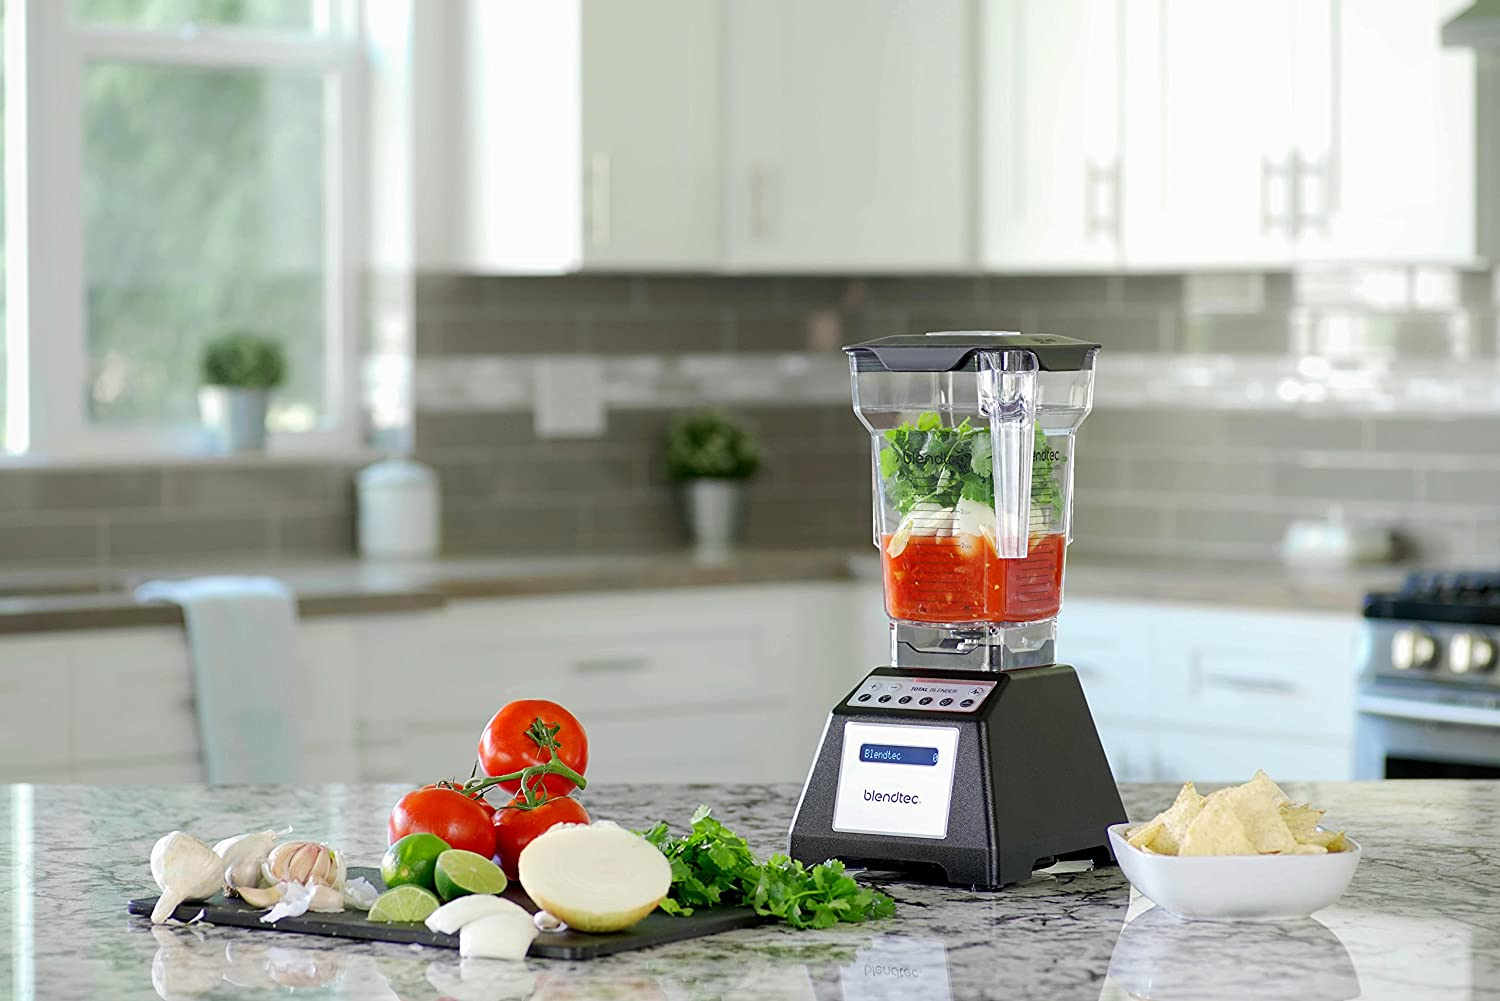 Best Blenders For Acai Bowls - Oster Pro 1200 Blender